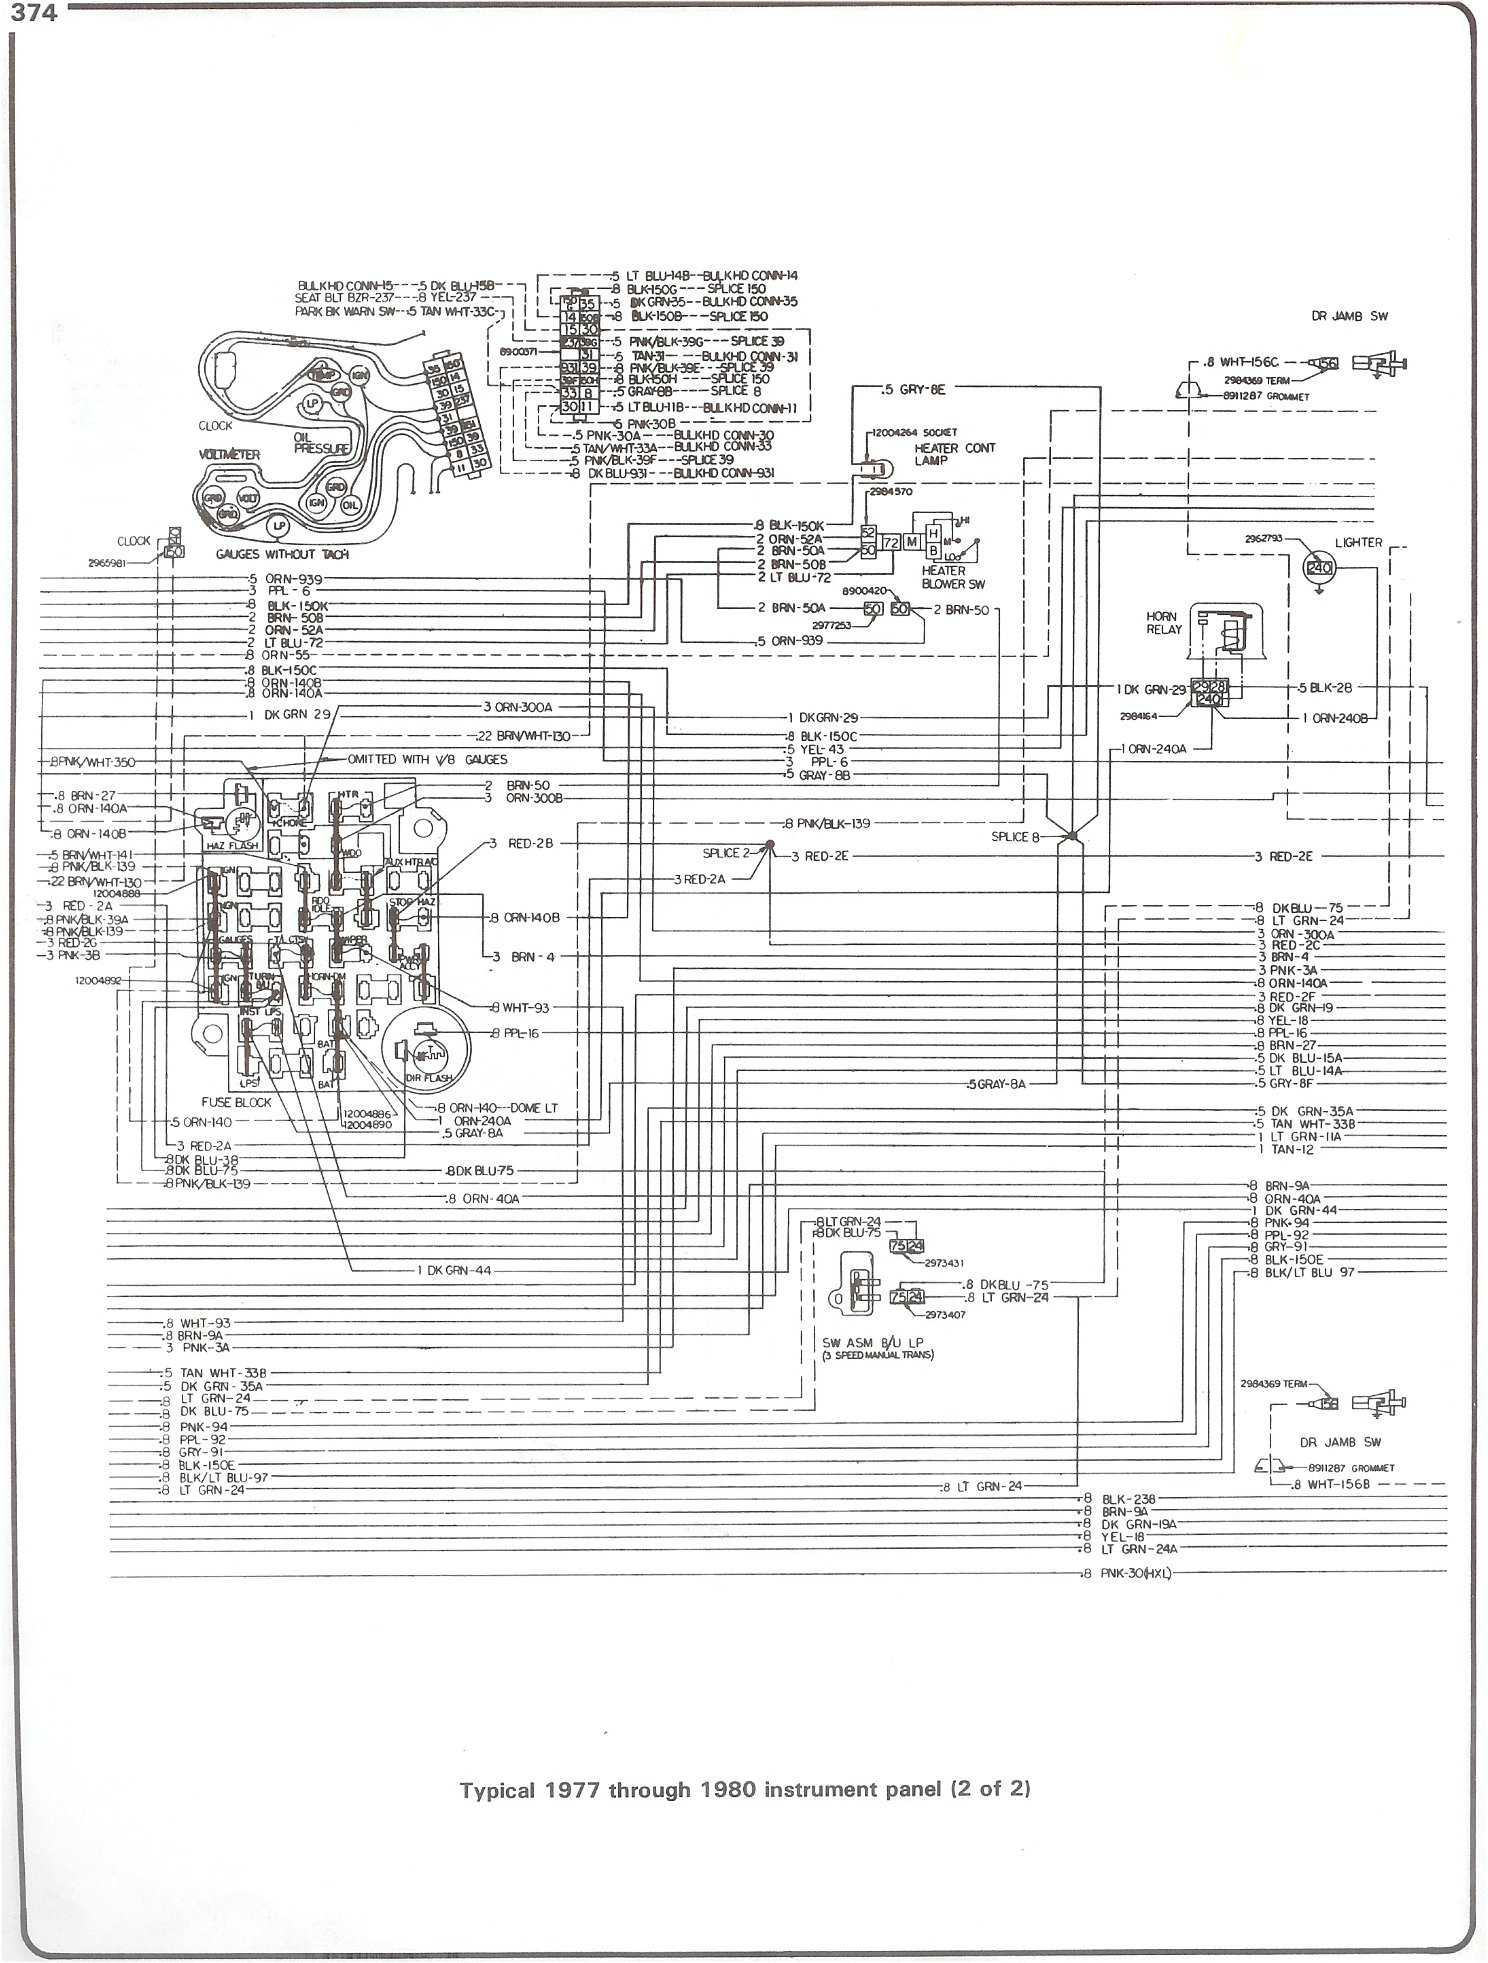 [SCHEMATICS_48IS]  WRG-0912] 1985 Chevy Wiring Diagrams Ecu | 1985 C30 Vacuum Diagram Wiring Schematic |  | mx.tl